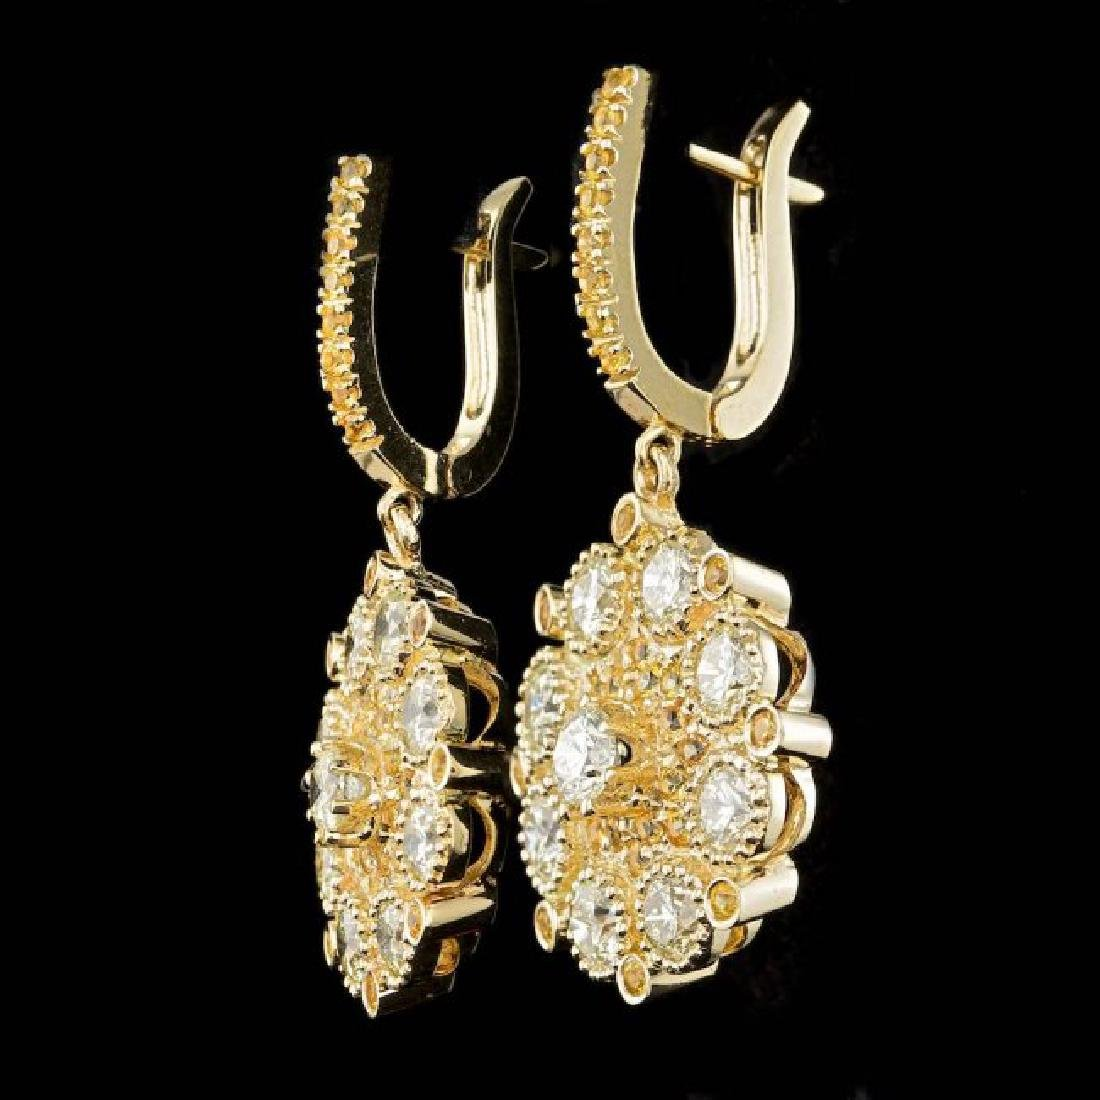 14k Yellow Gold 6.4ct Diamond Earrings - 2